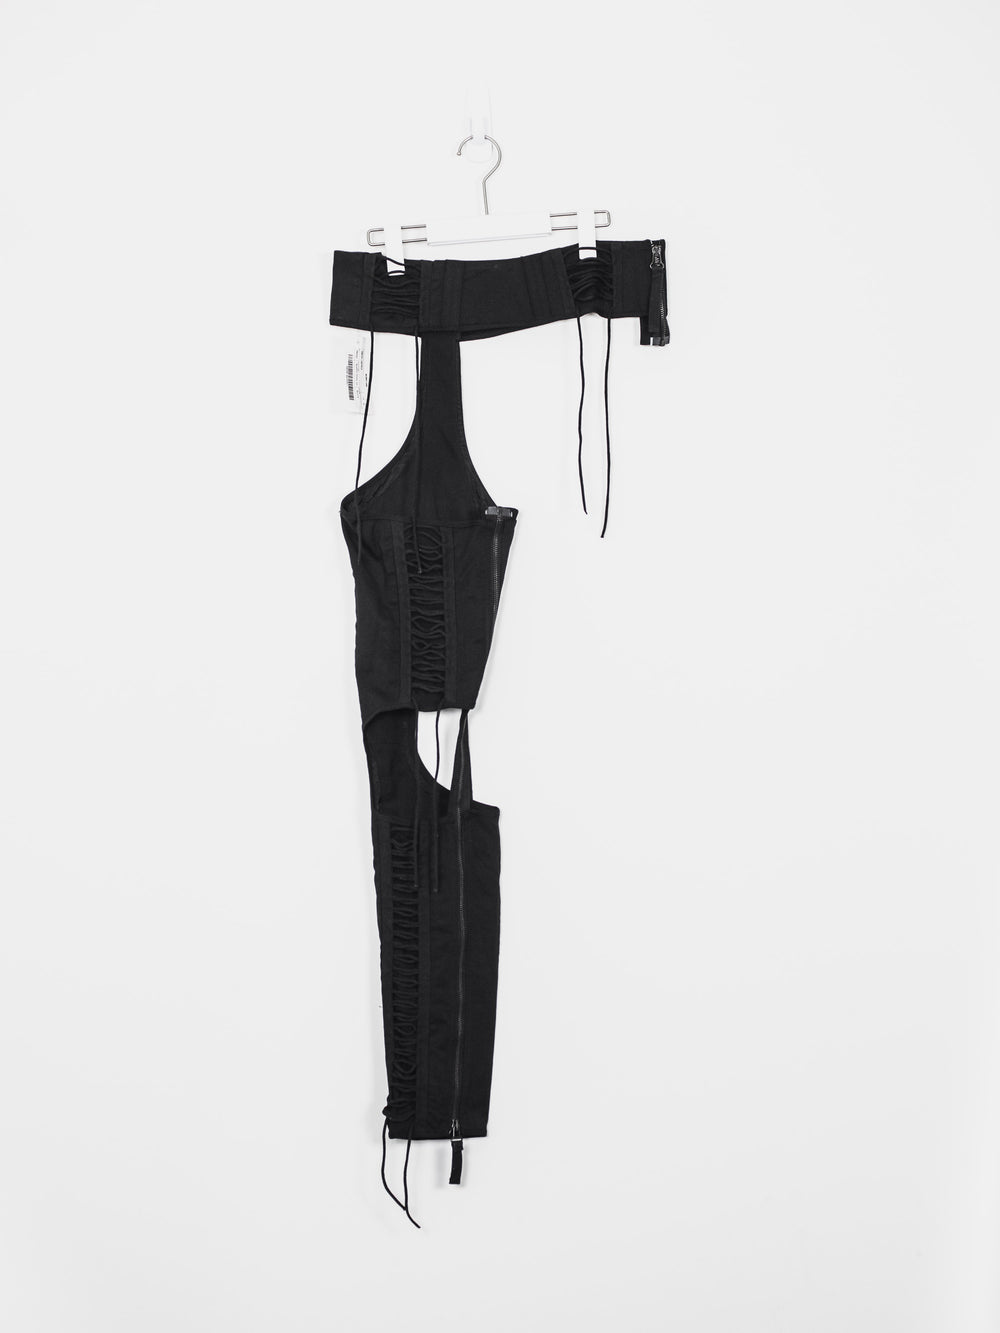 Helmut Lang AW03 Aviator Single Legged Chap